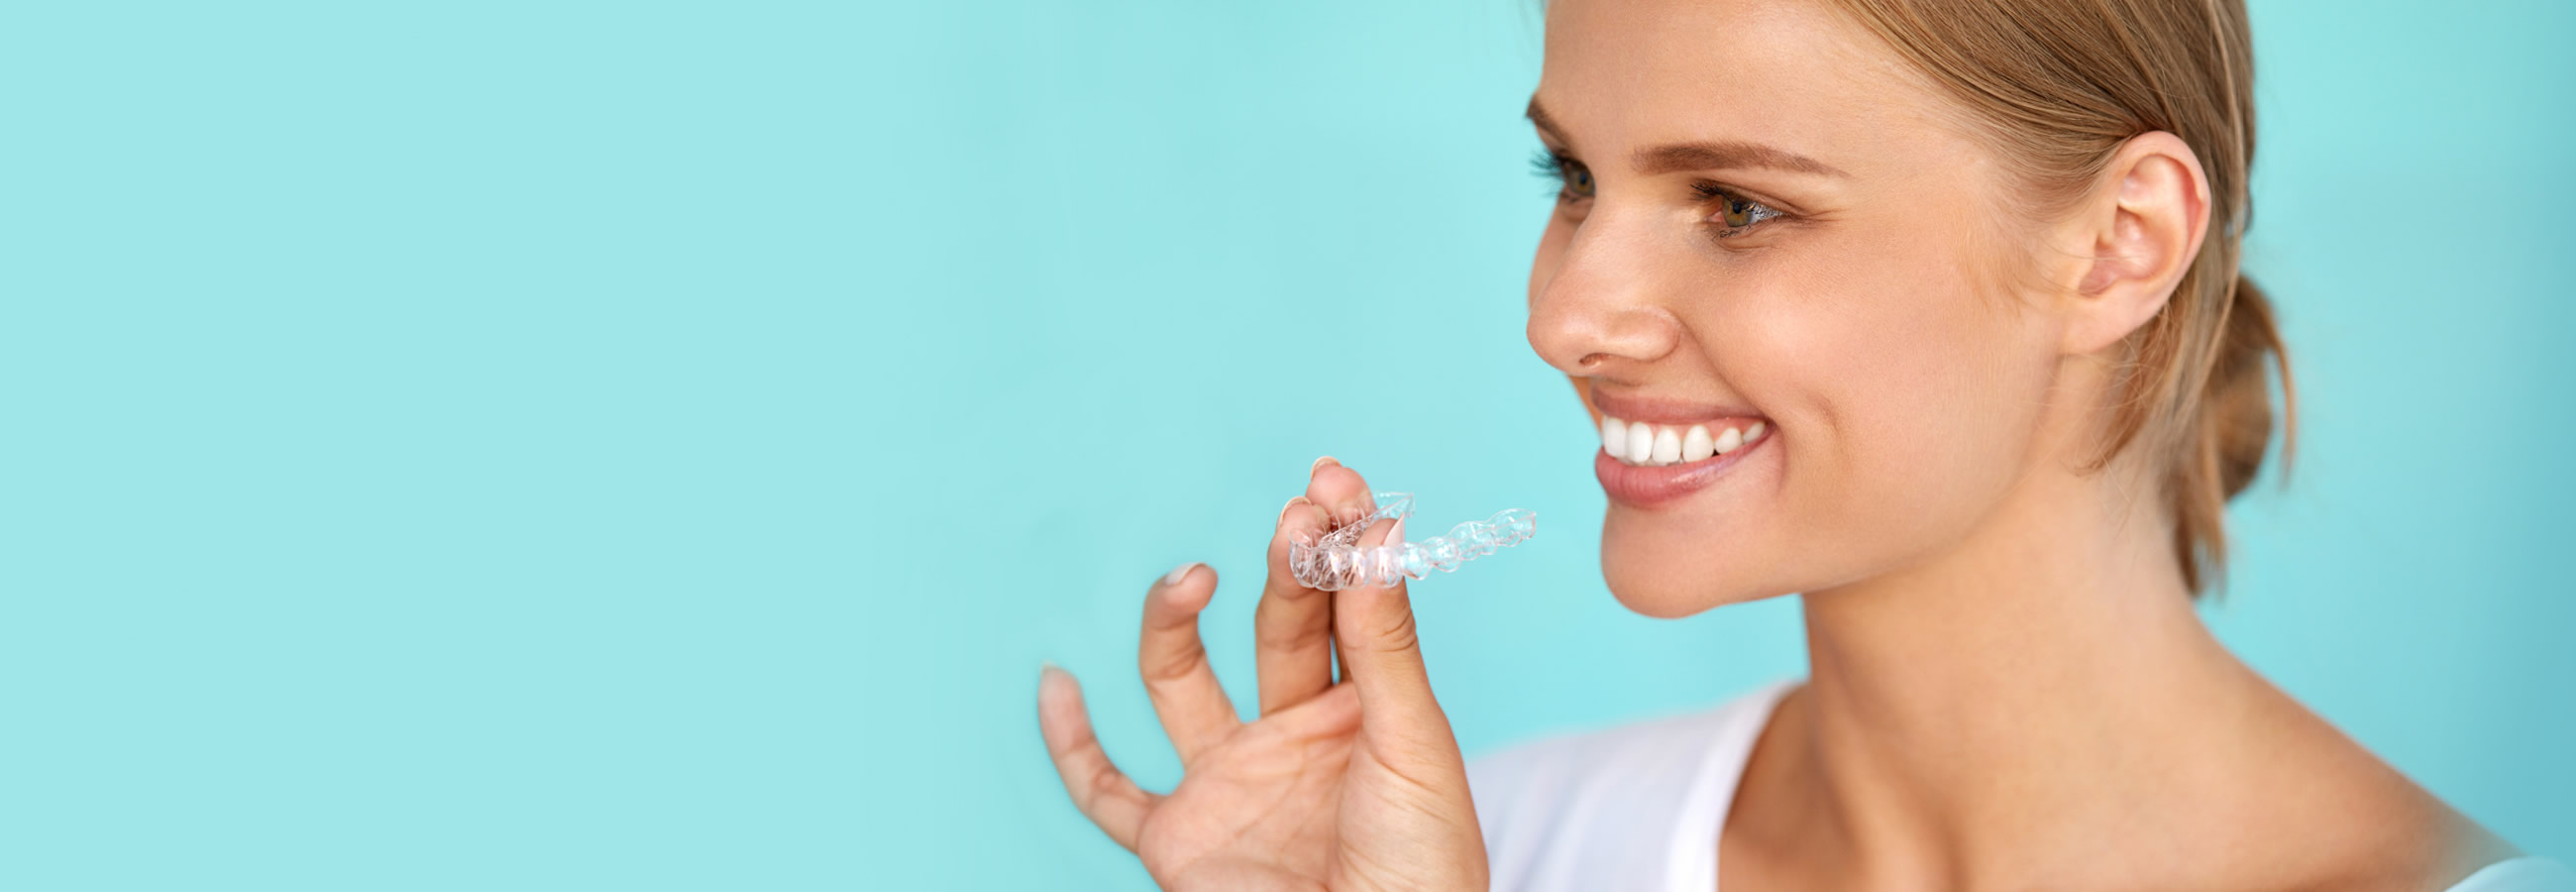 Home Teeth Whitening Kits in the City of London